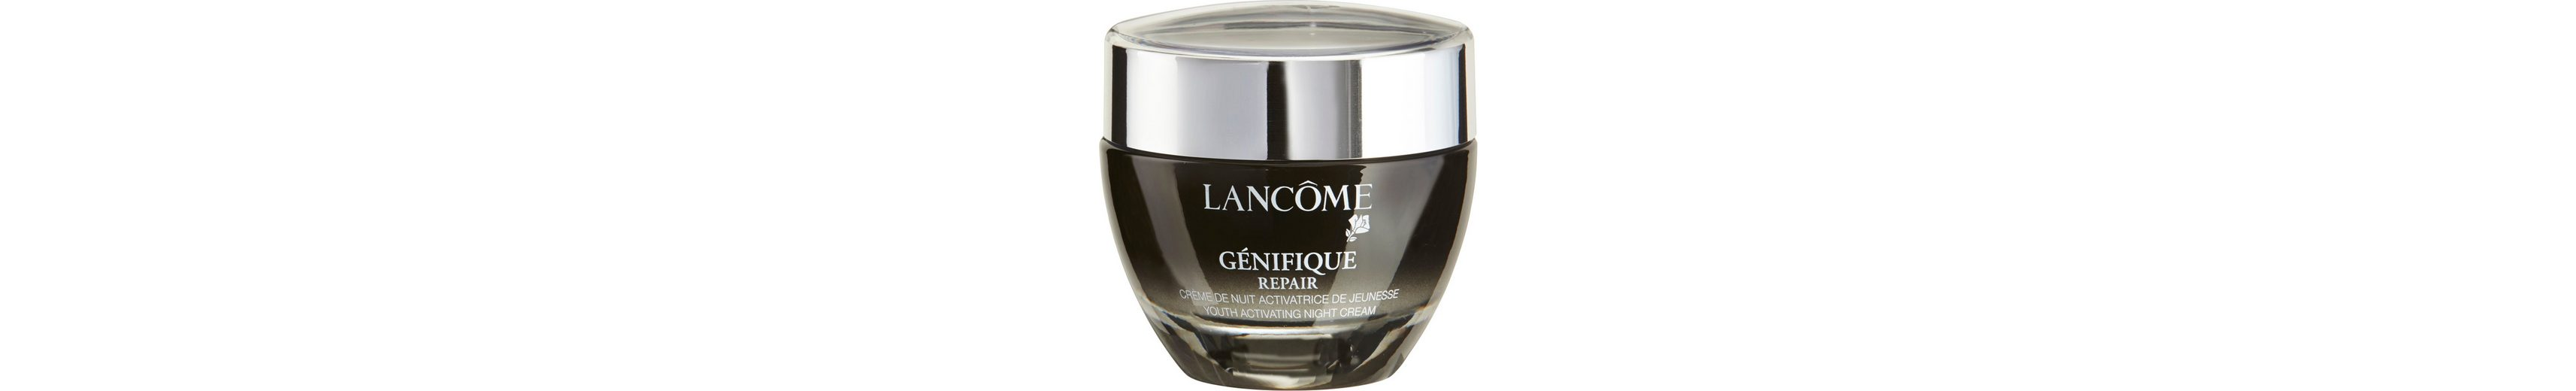 Lancôme, »Génifique Repair Night«, Reparierende Nachtpflege